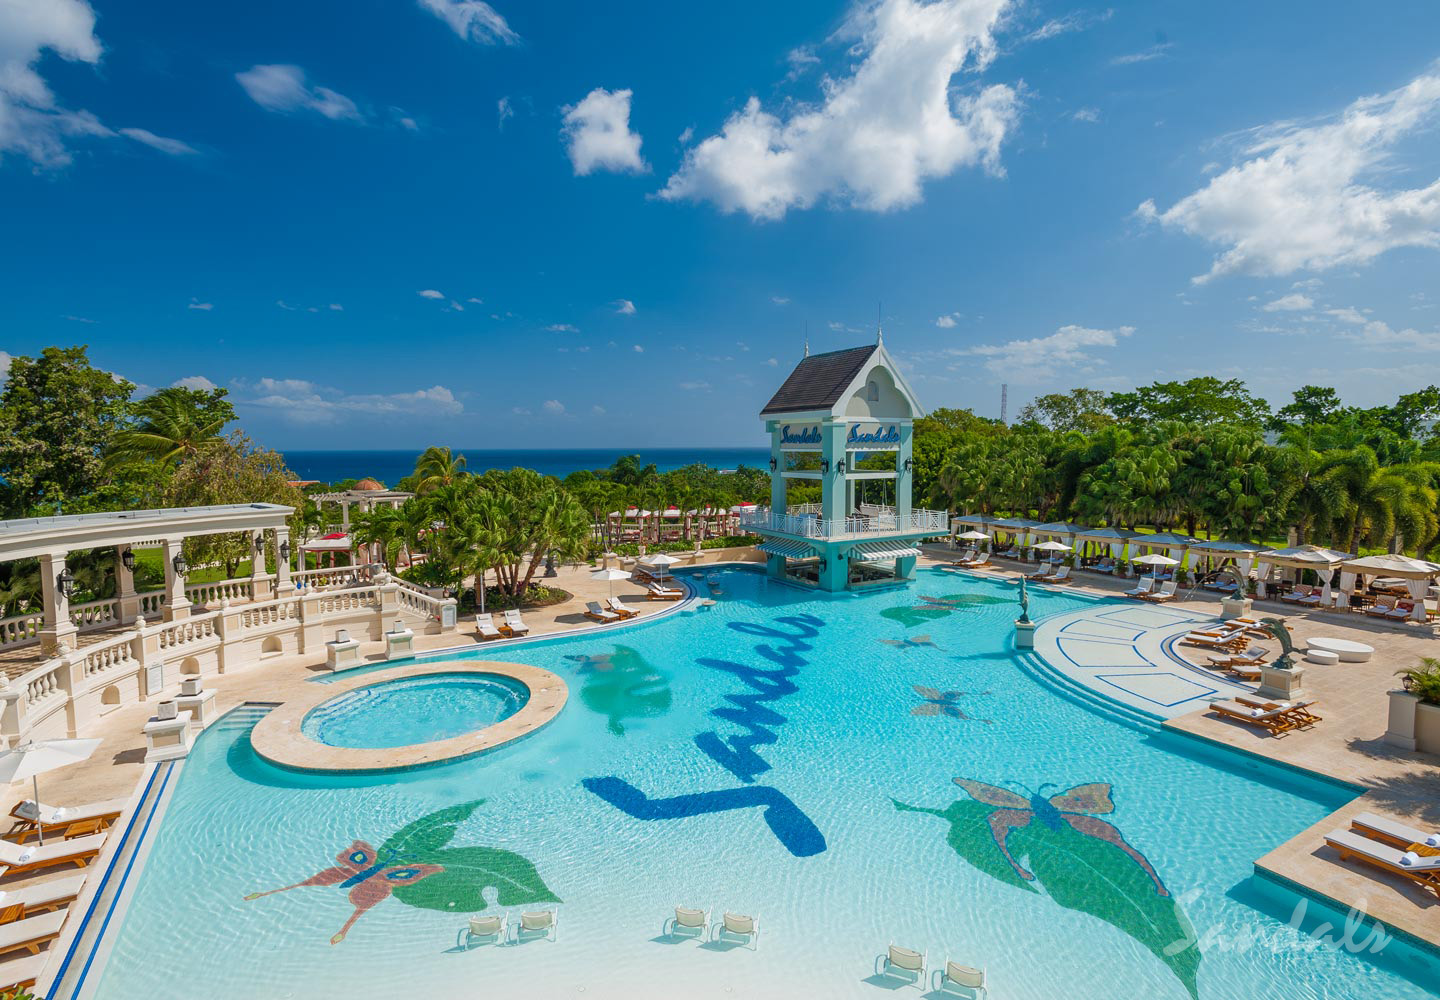 Travel Agency All-Inclusive Resort Sandals Ochi 152